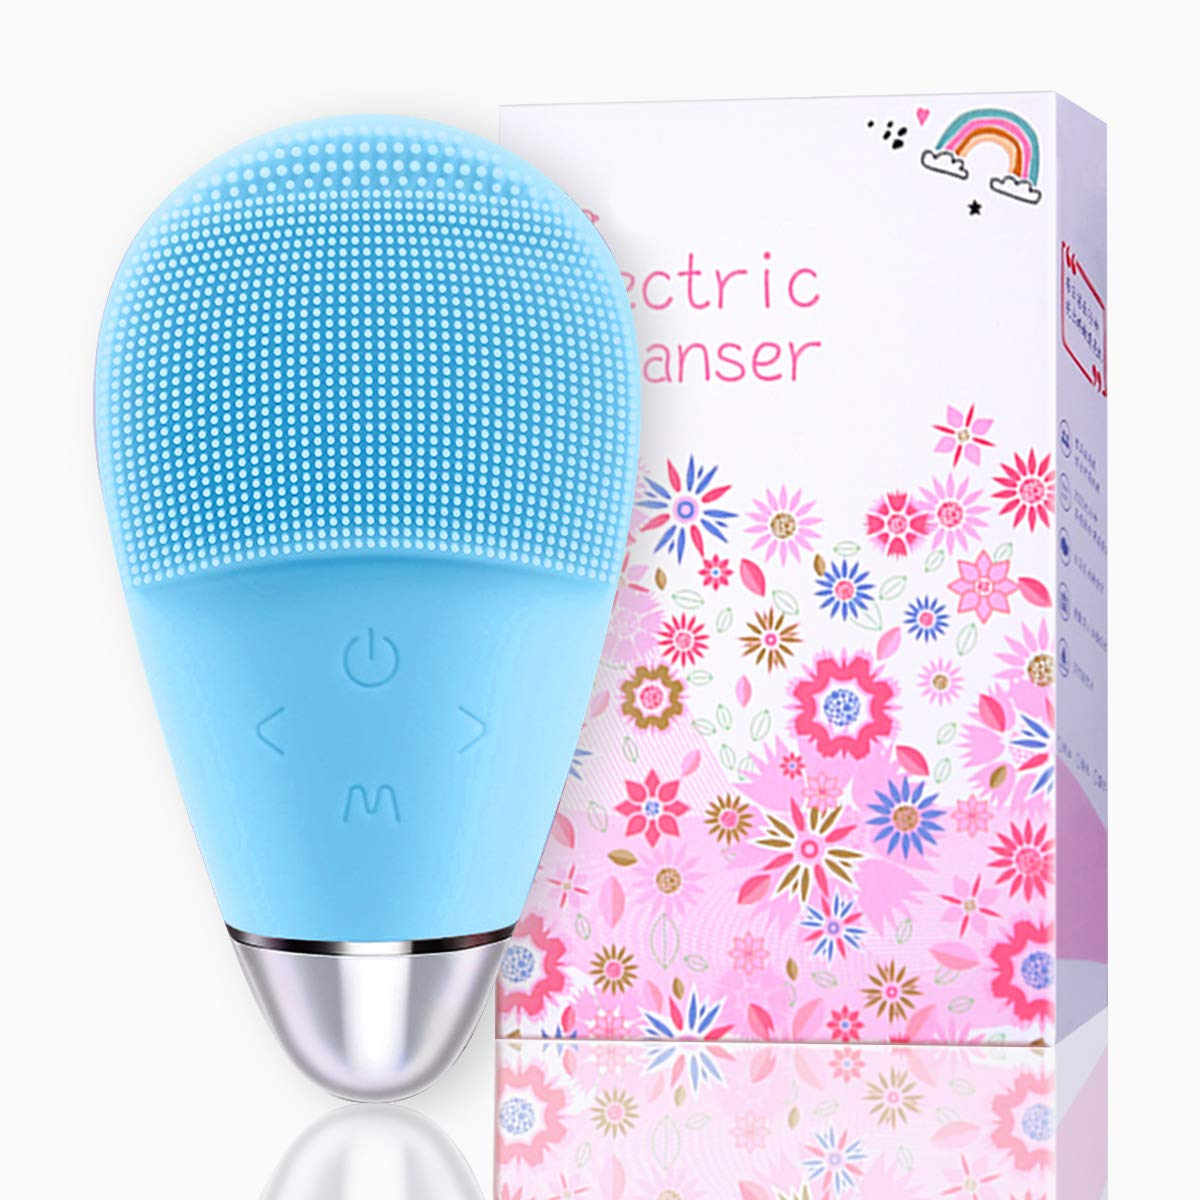 Silicone Facial Cleansing Brush,Alivin Waterproof Silicon Facial Cleaner Electric Masager Cleansing System for Deep Cleansing Skin Care,Gentle Exfoliating